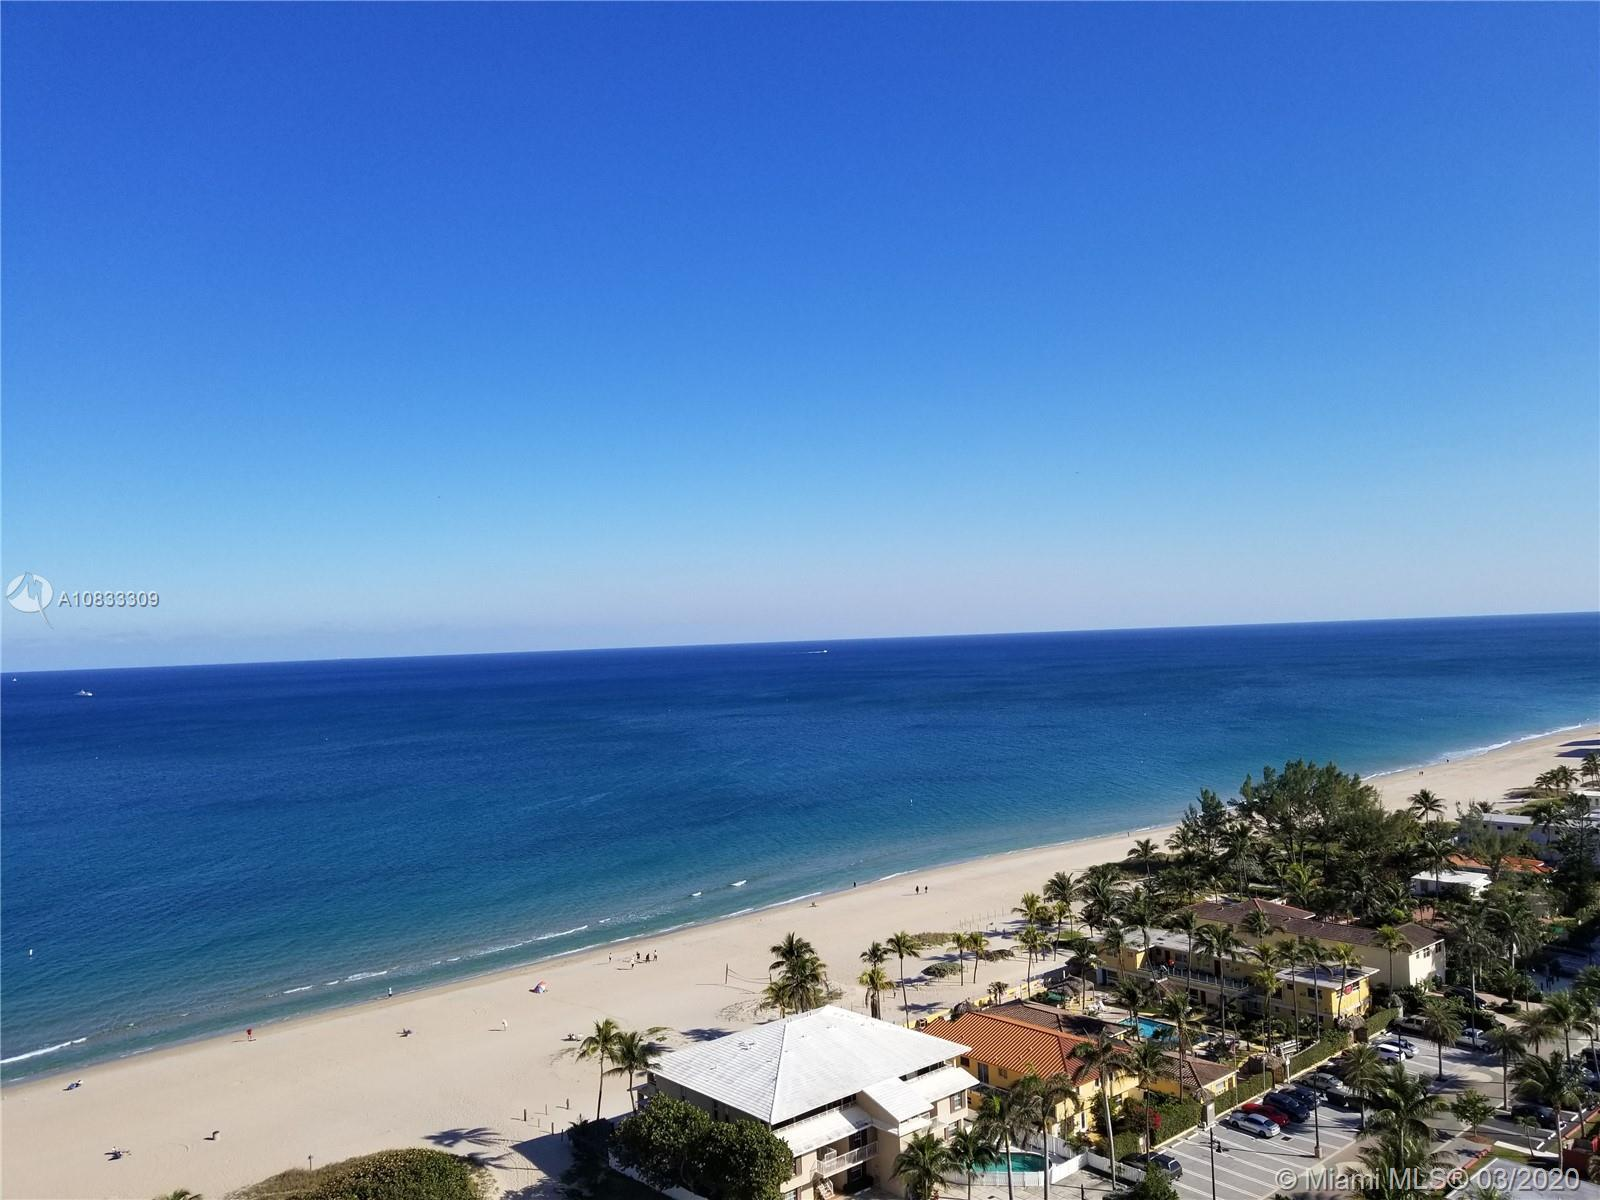 GREAT BEACH PLACE WITH 2 POOLS, GAME ROOM, GYM, CLUB HOUSE, BEACH ACCESS, RESTAURANT, CARD ROOM, PRI